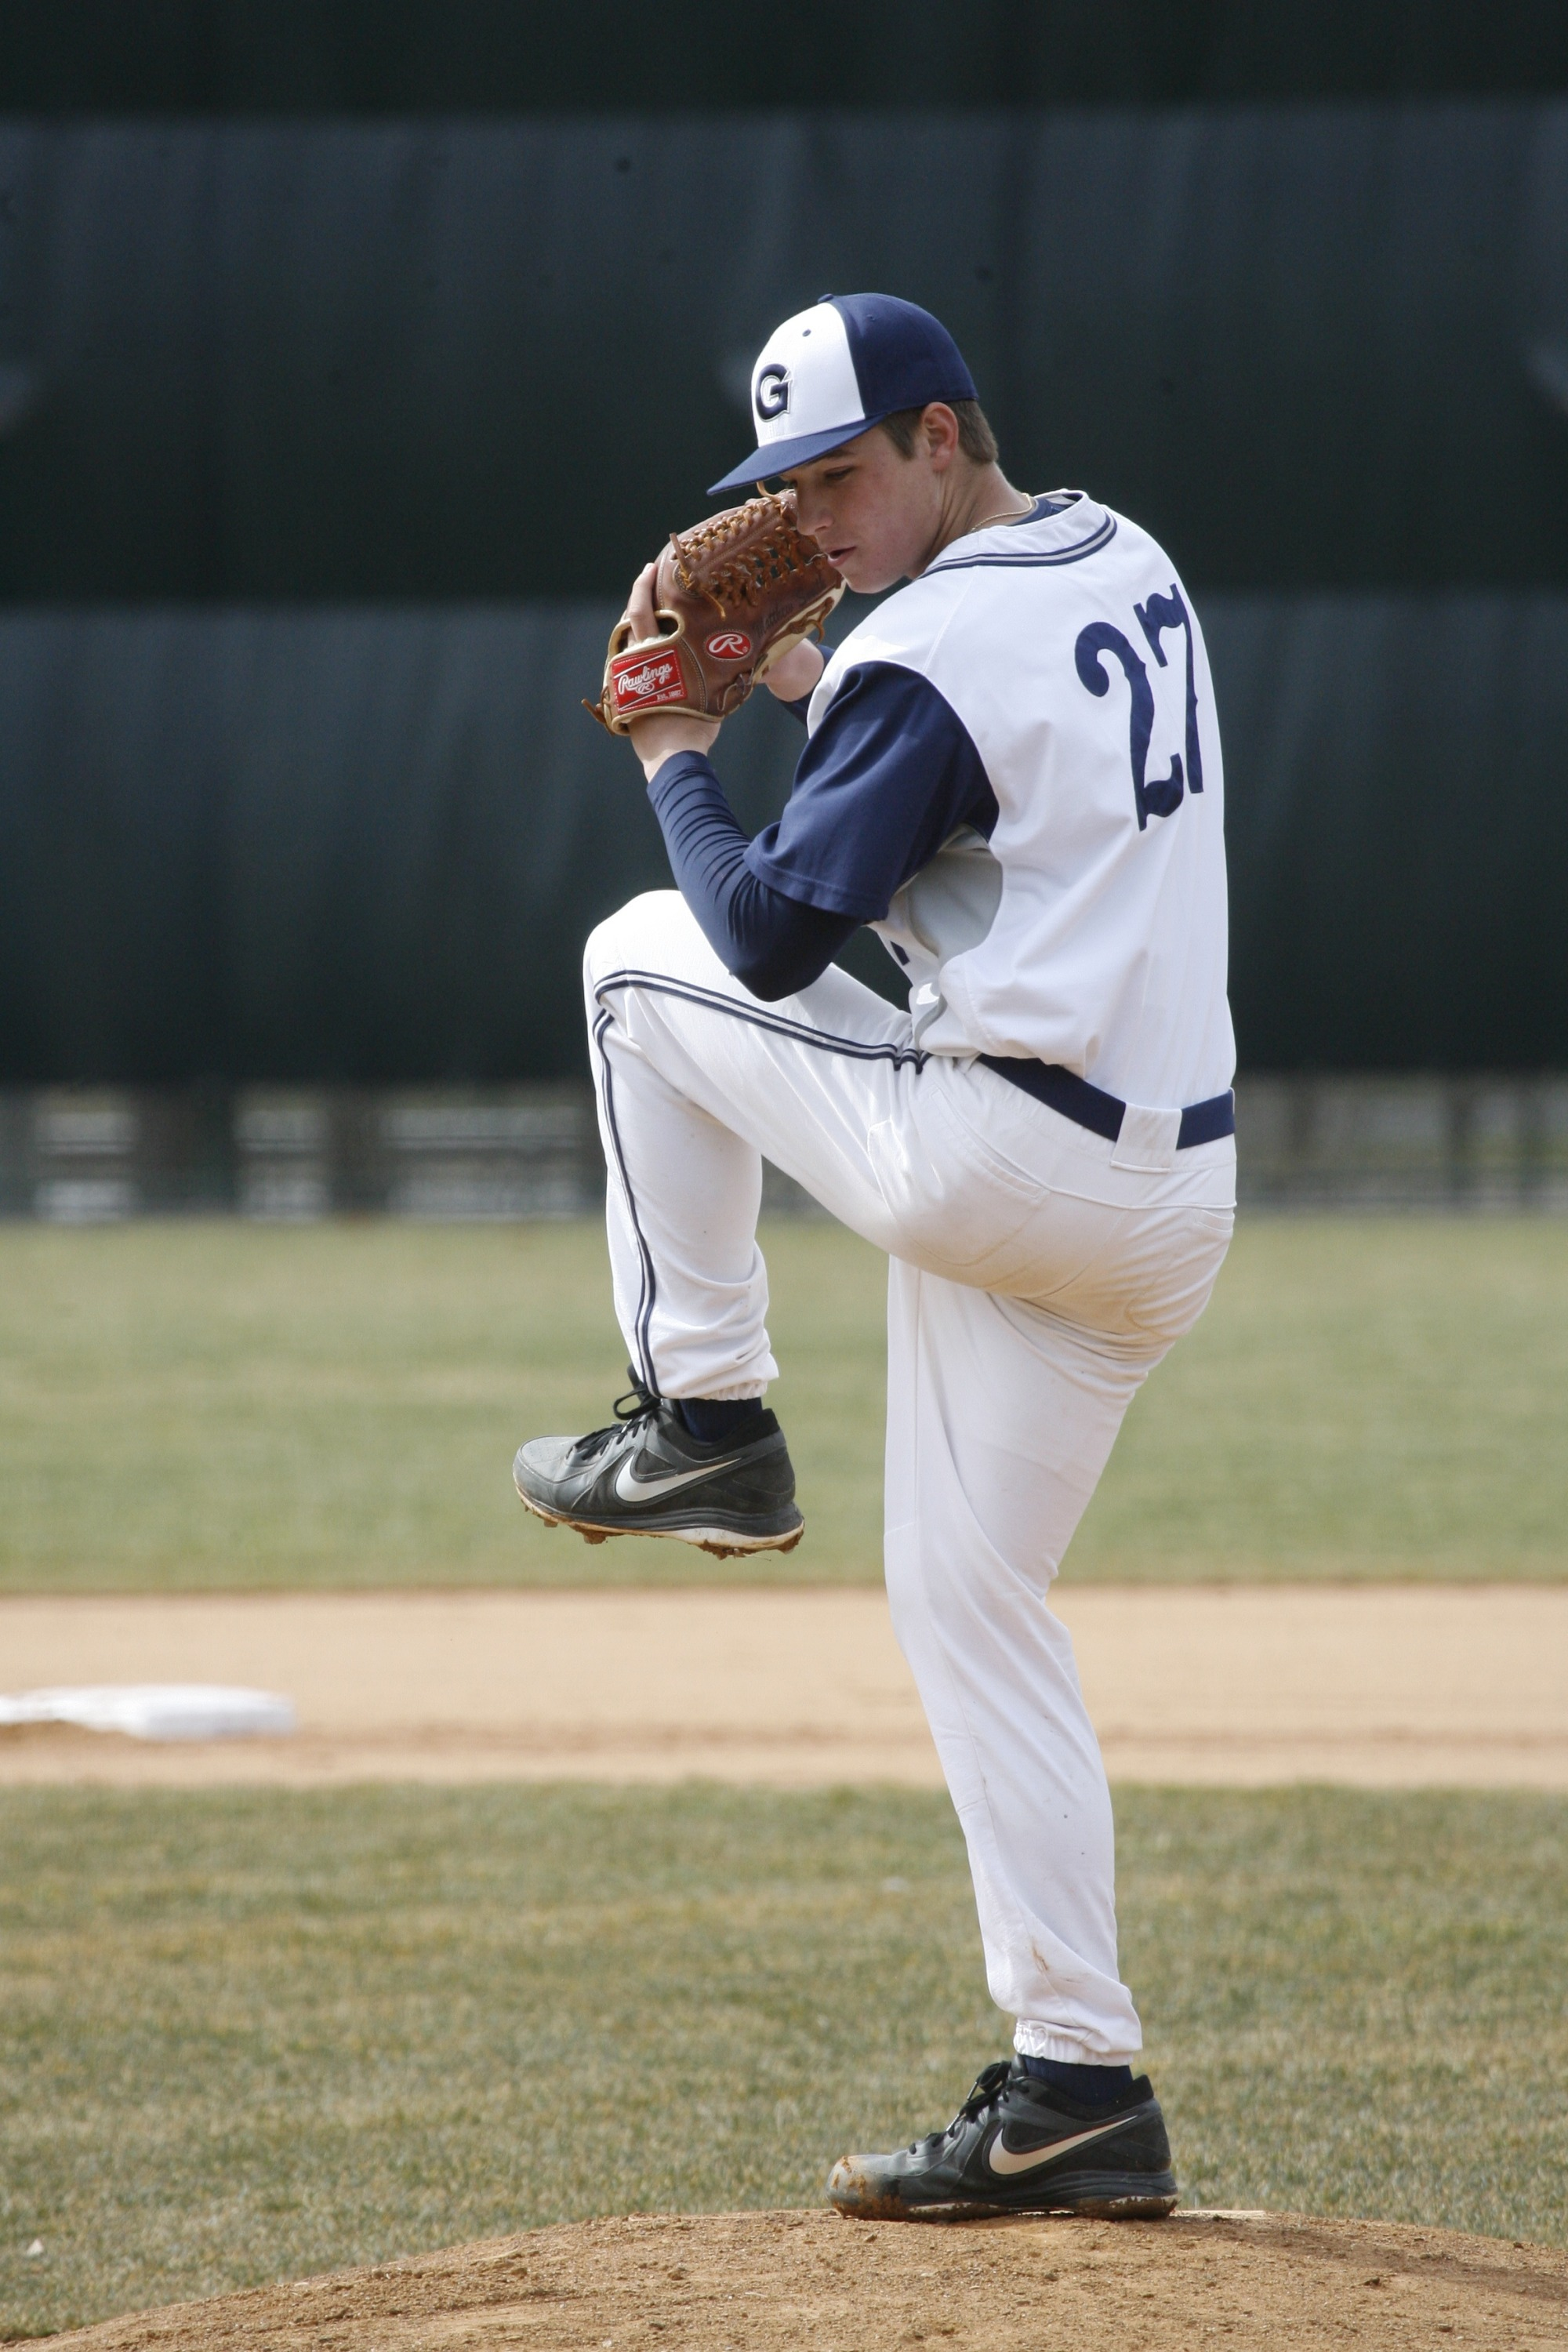 Matt Smith, pitching for the Forest City Owls, is 5-0 and was selected to the Coastal Plains All-Star Game.